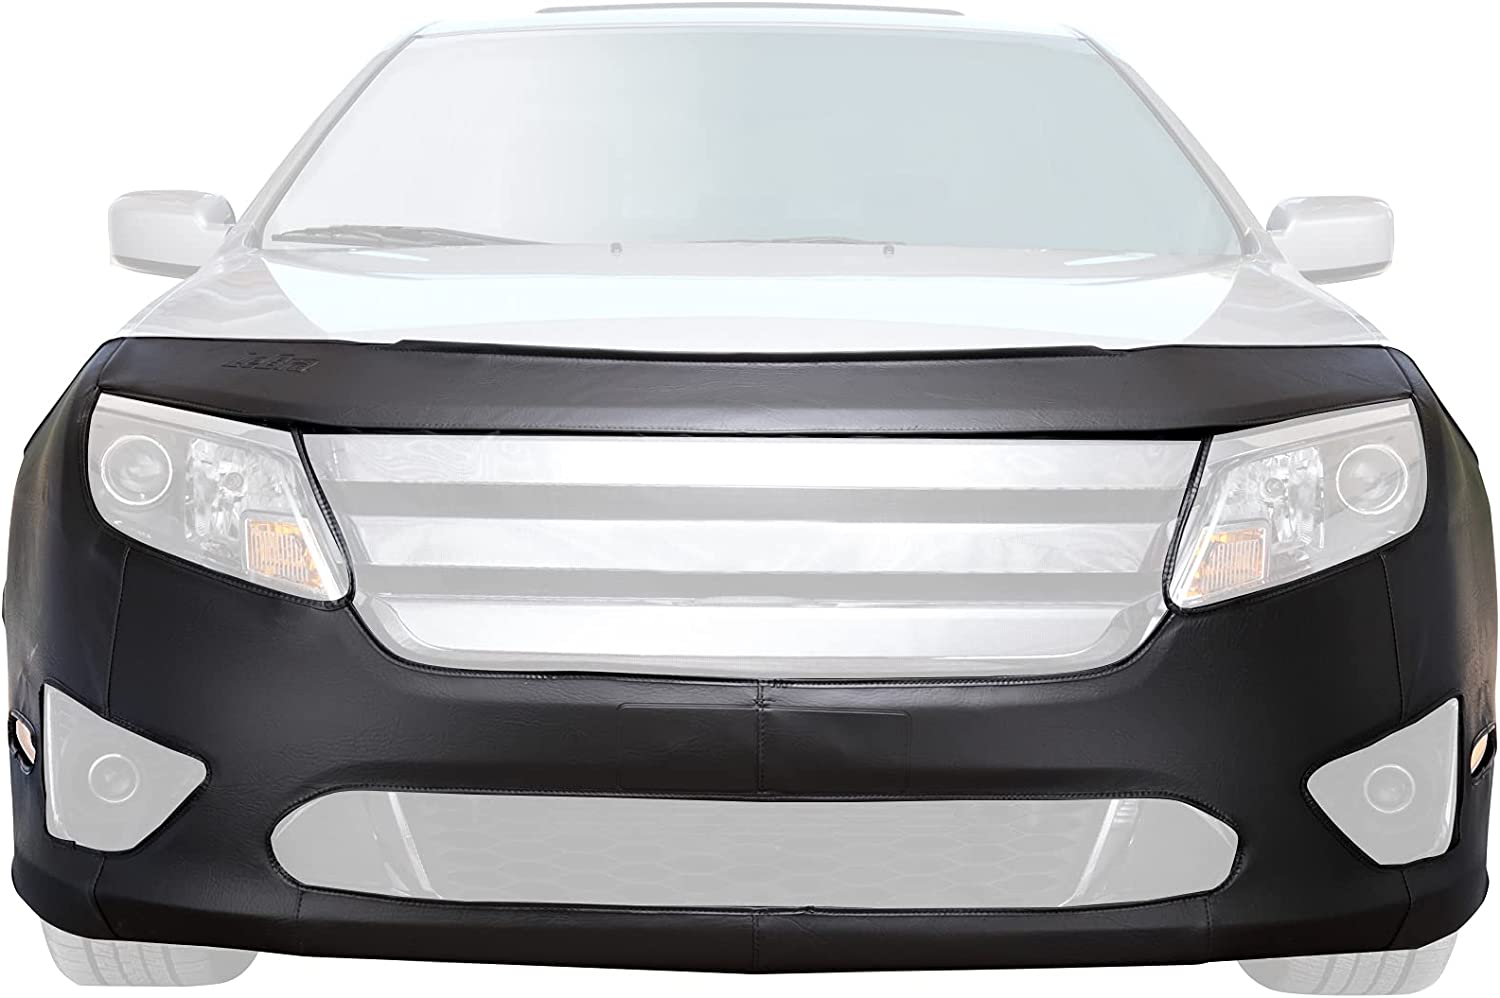 Covercraft LeBra Custom Front Compatible 551413-01 Cover End Fixed Clearance SALE! Limited time! price for sale